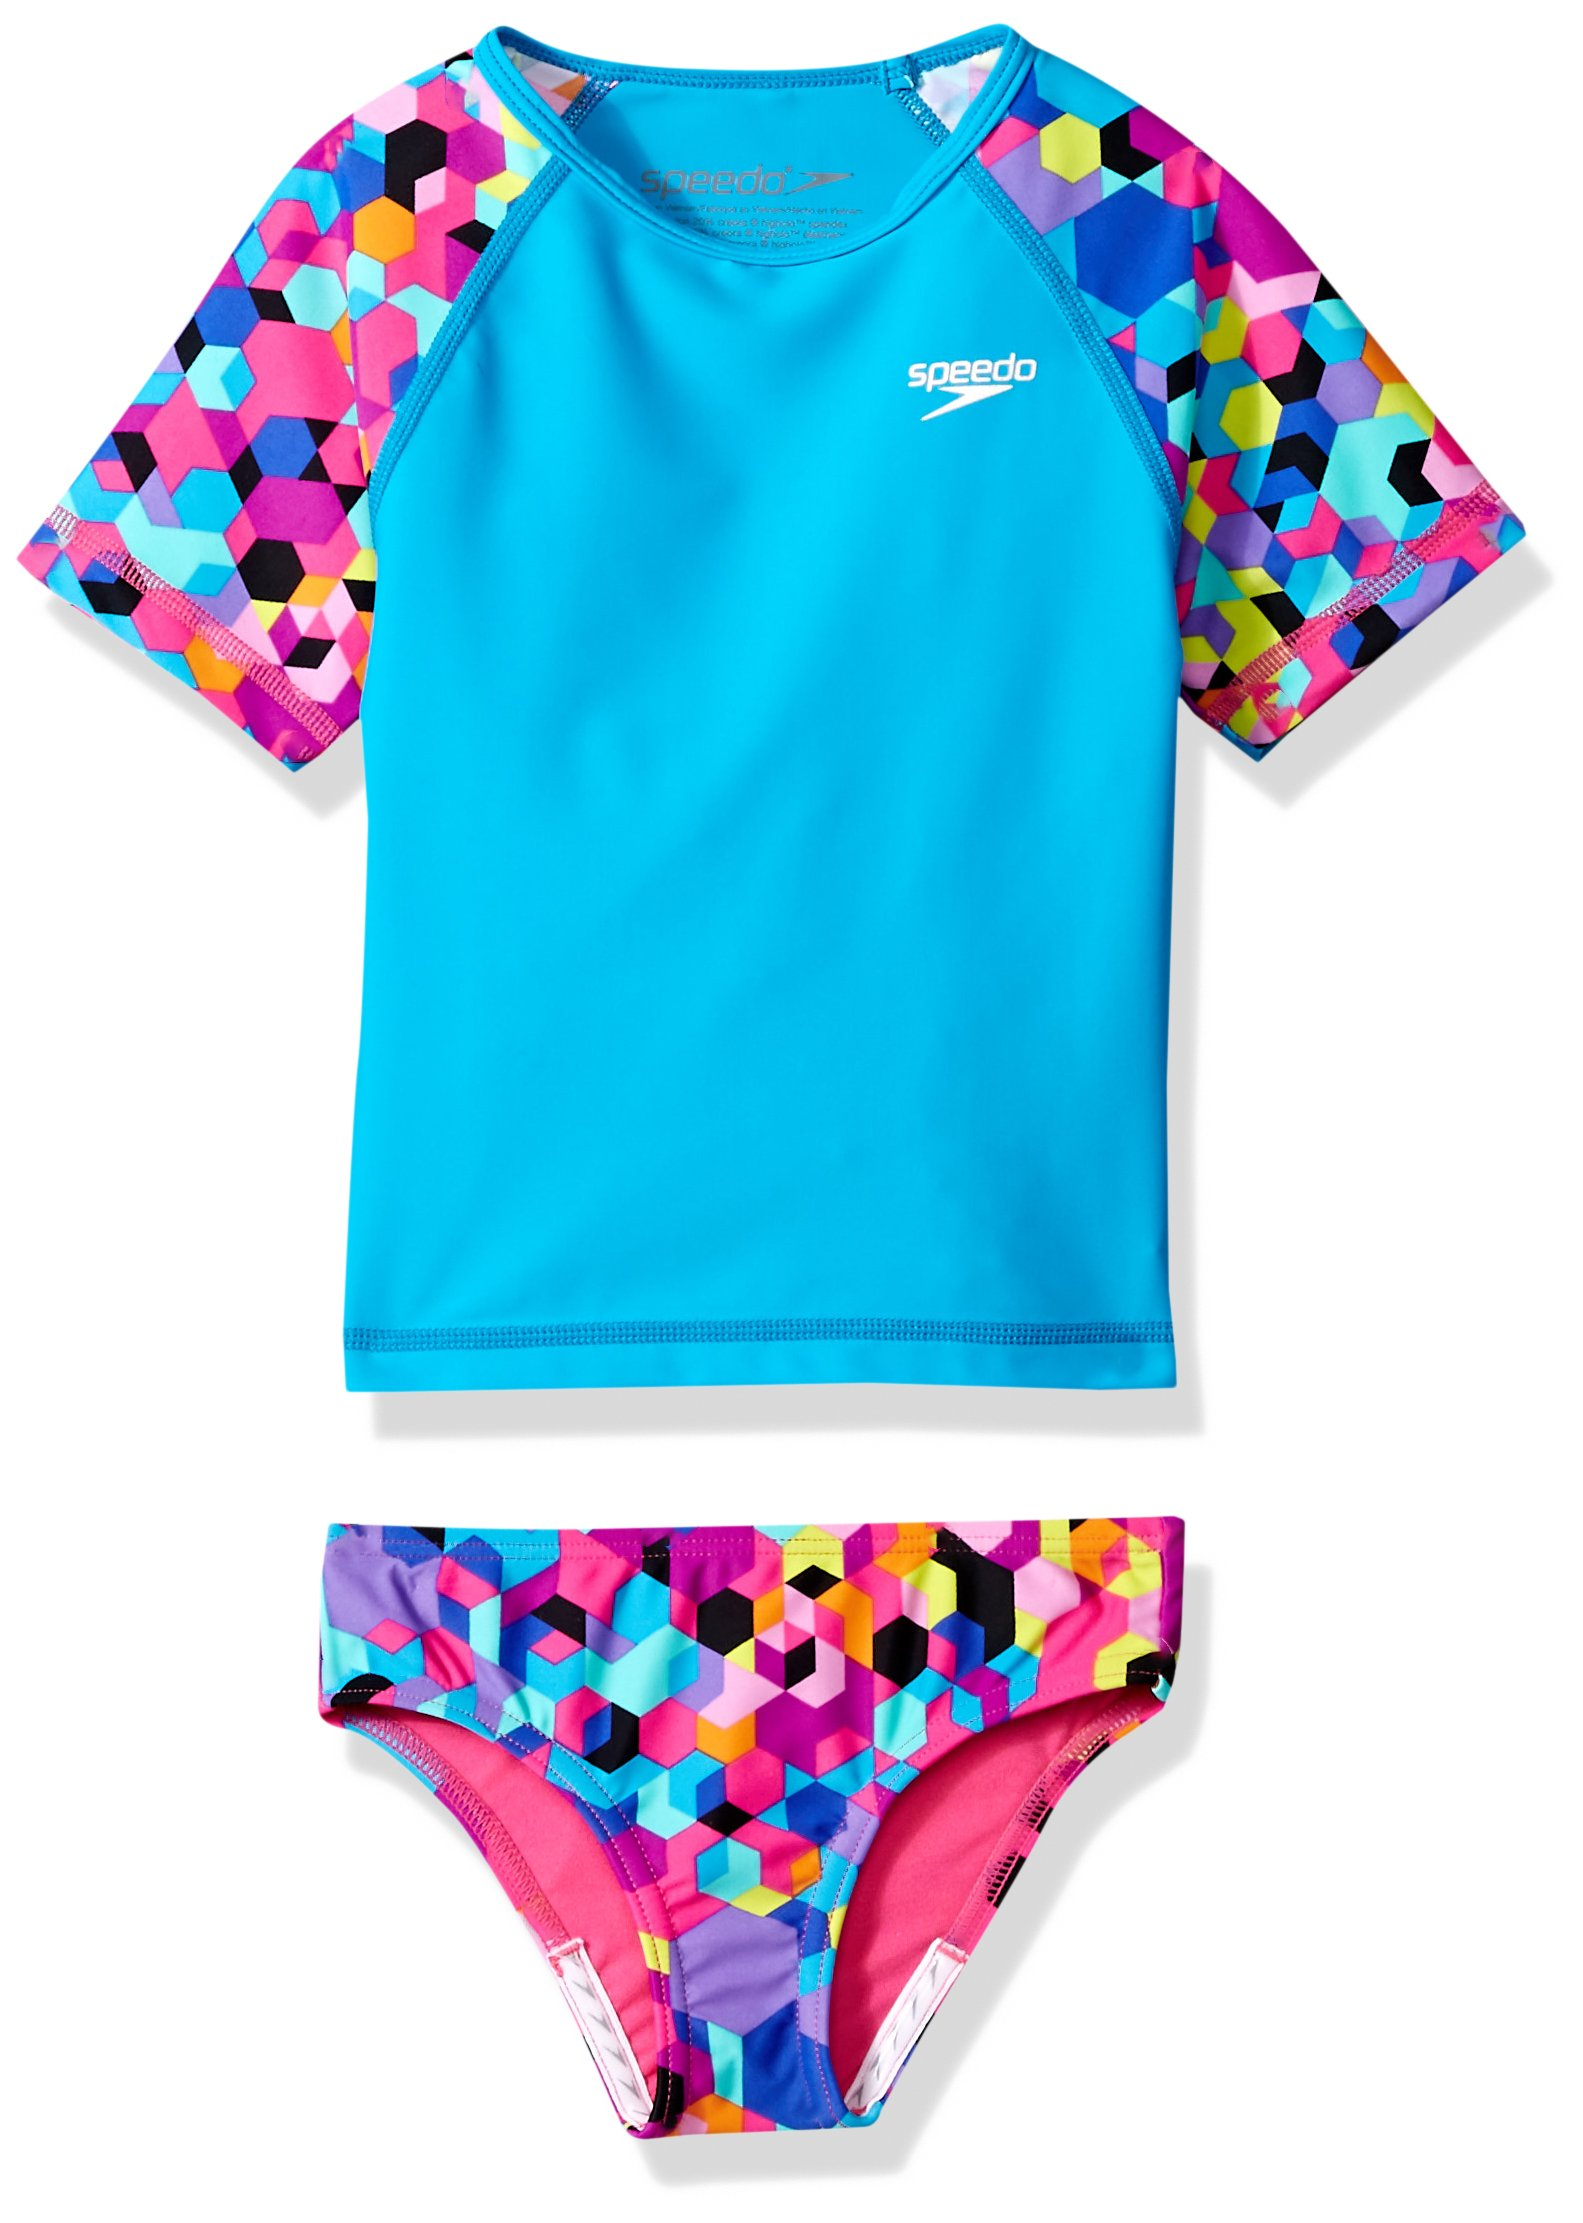 Speedo Girls Printed 4-6X Two Piece Set, Blue, Size 6